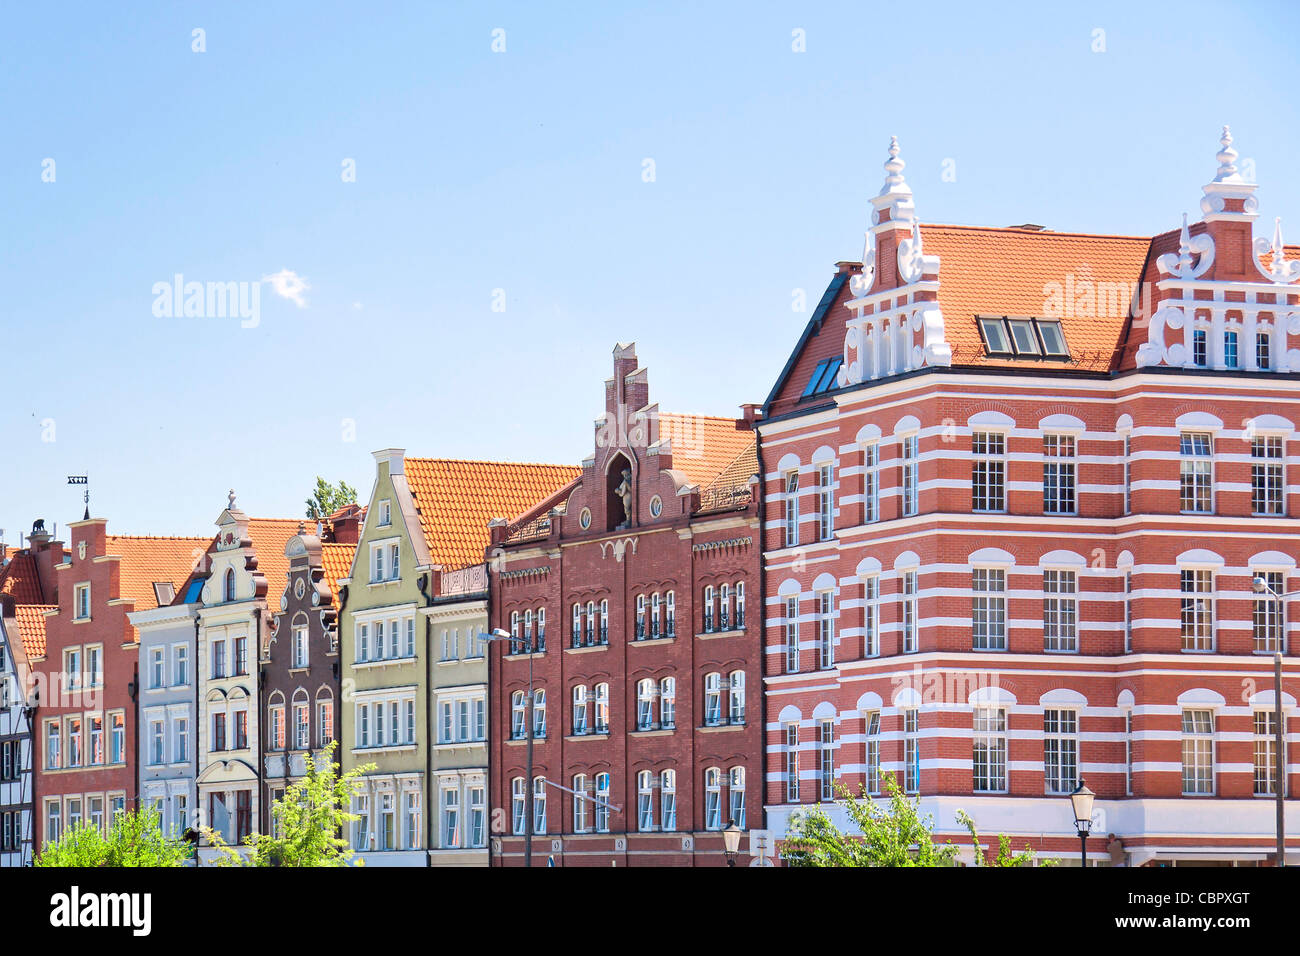 Port city at Baltic sea - Gdansk. Monuments in old town. - Stock Image